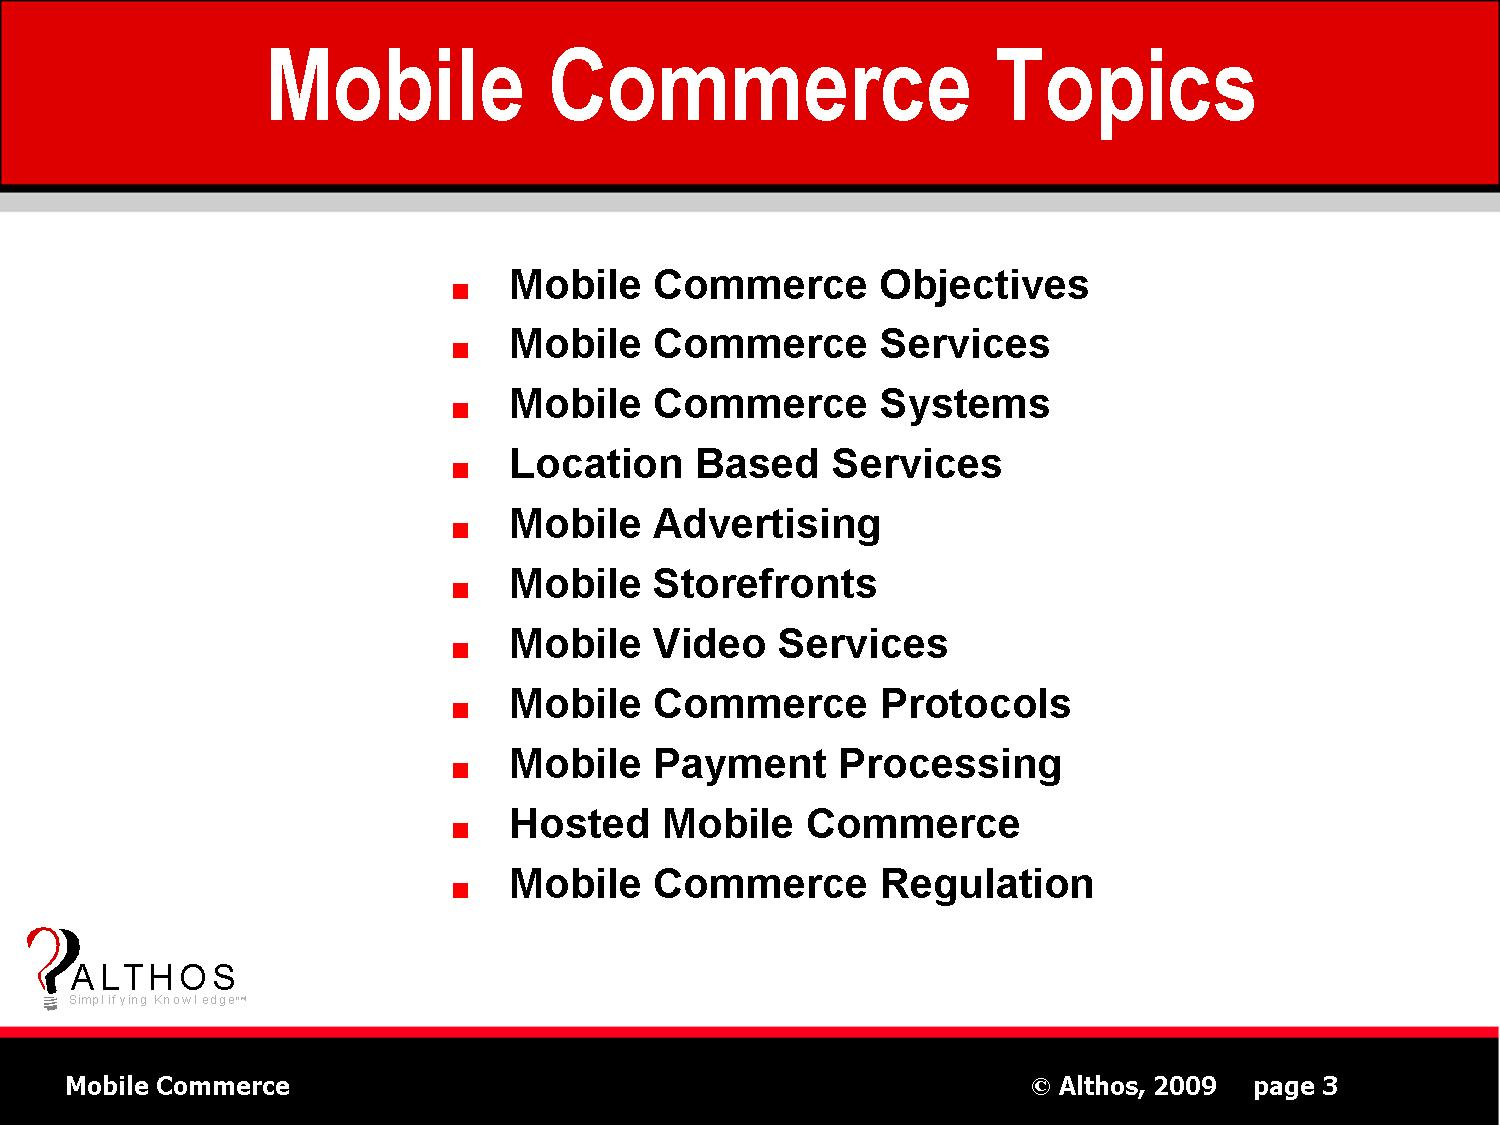 Mobile Commerce Topics Slide Image